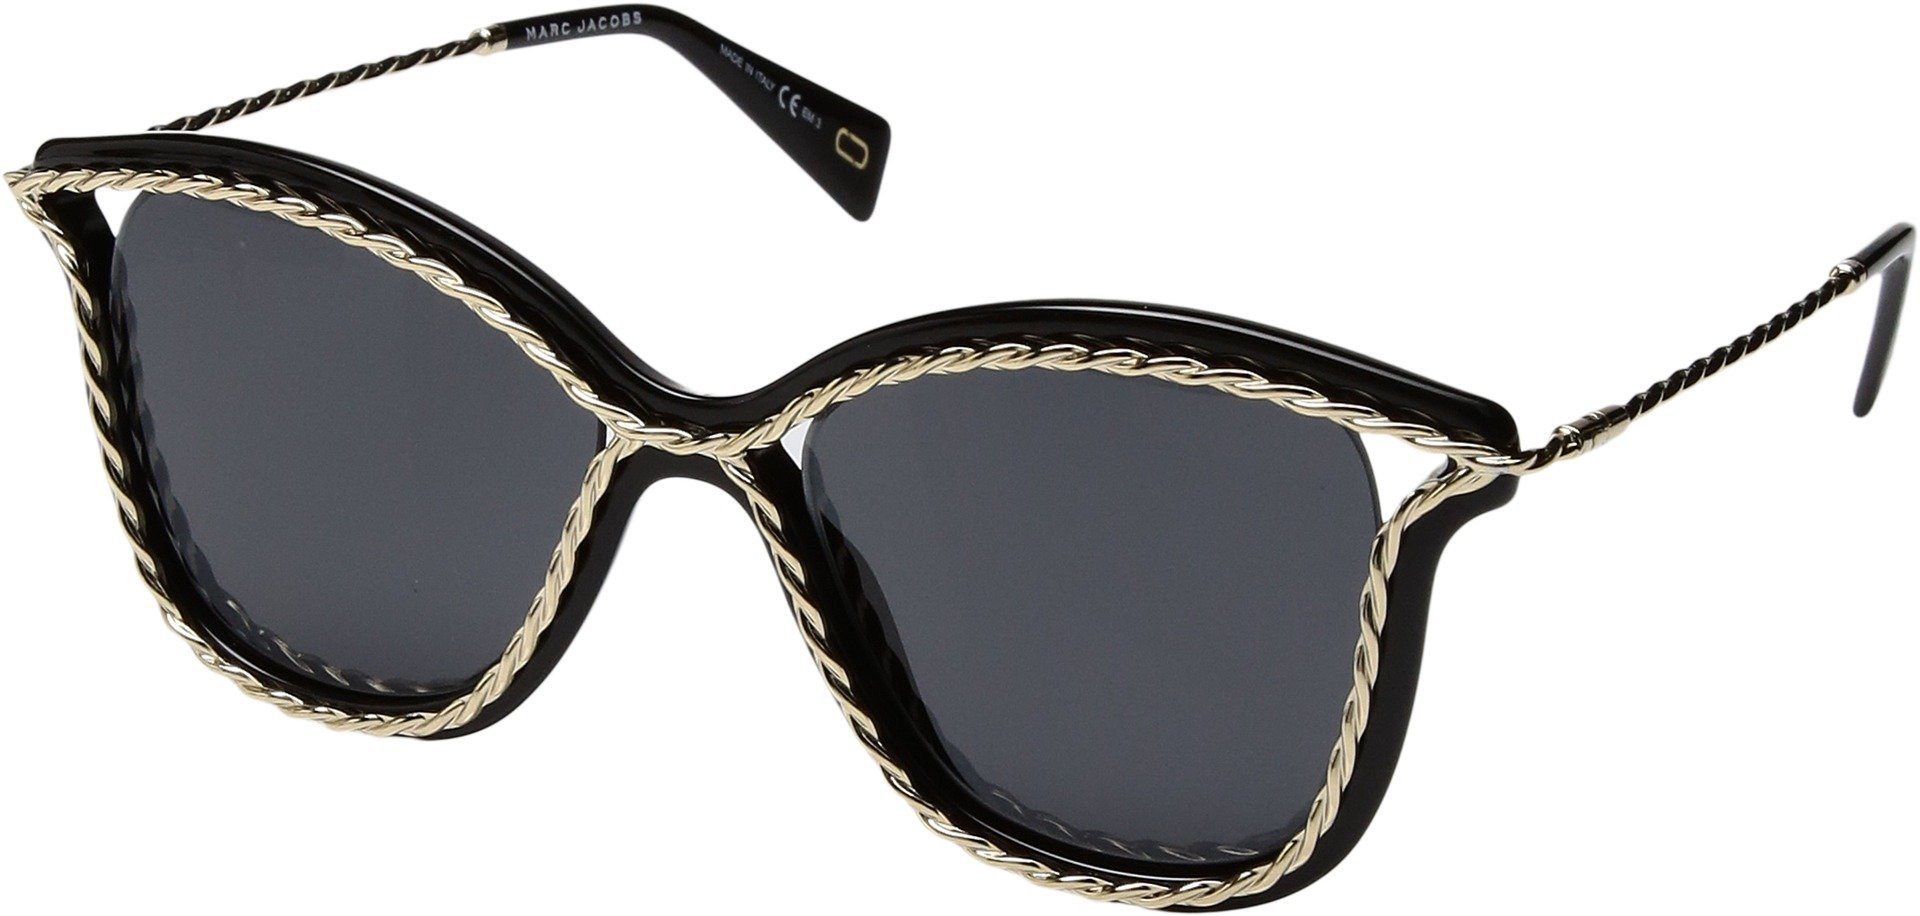 Marc Jacobs Women's Rope Outline Sunglasses, Black Gold/Grey, One Size by Marc Jacobs